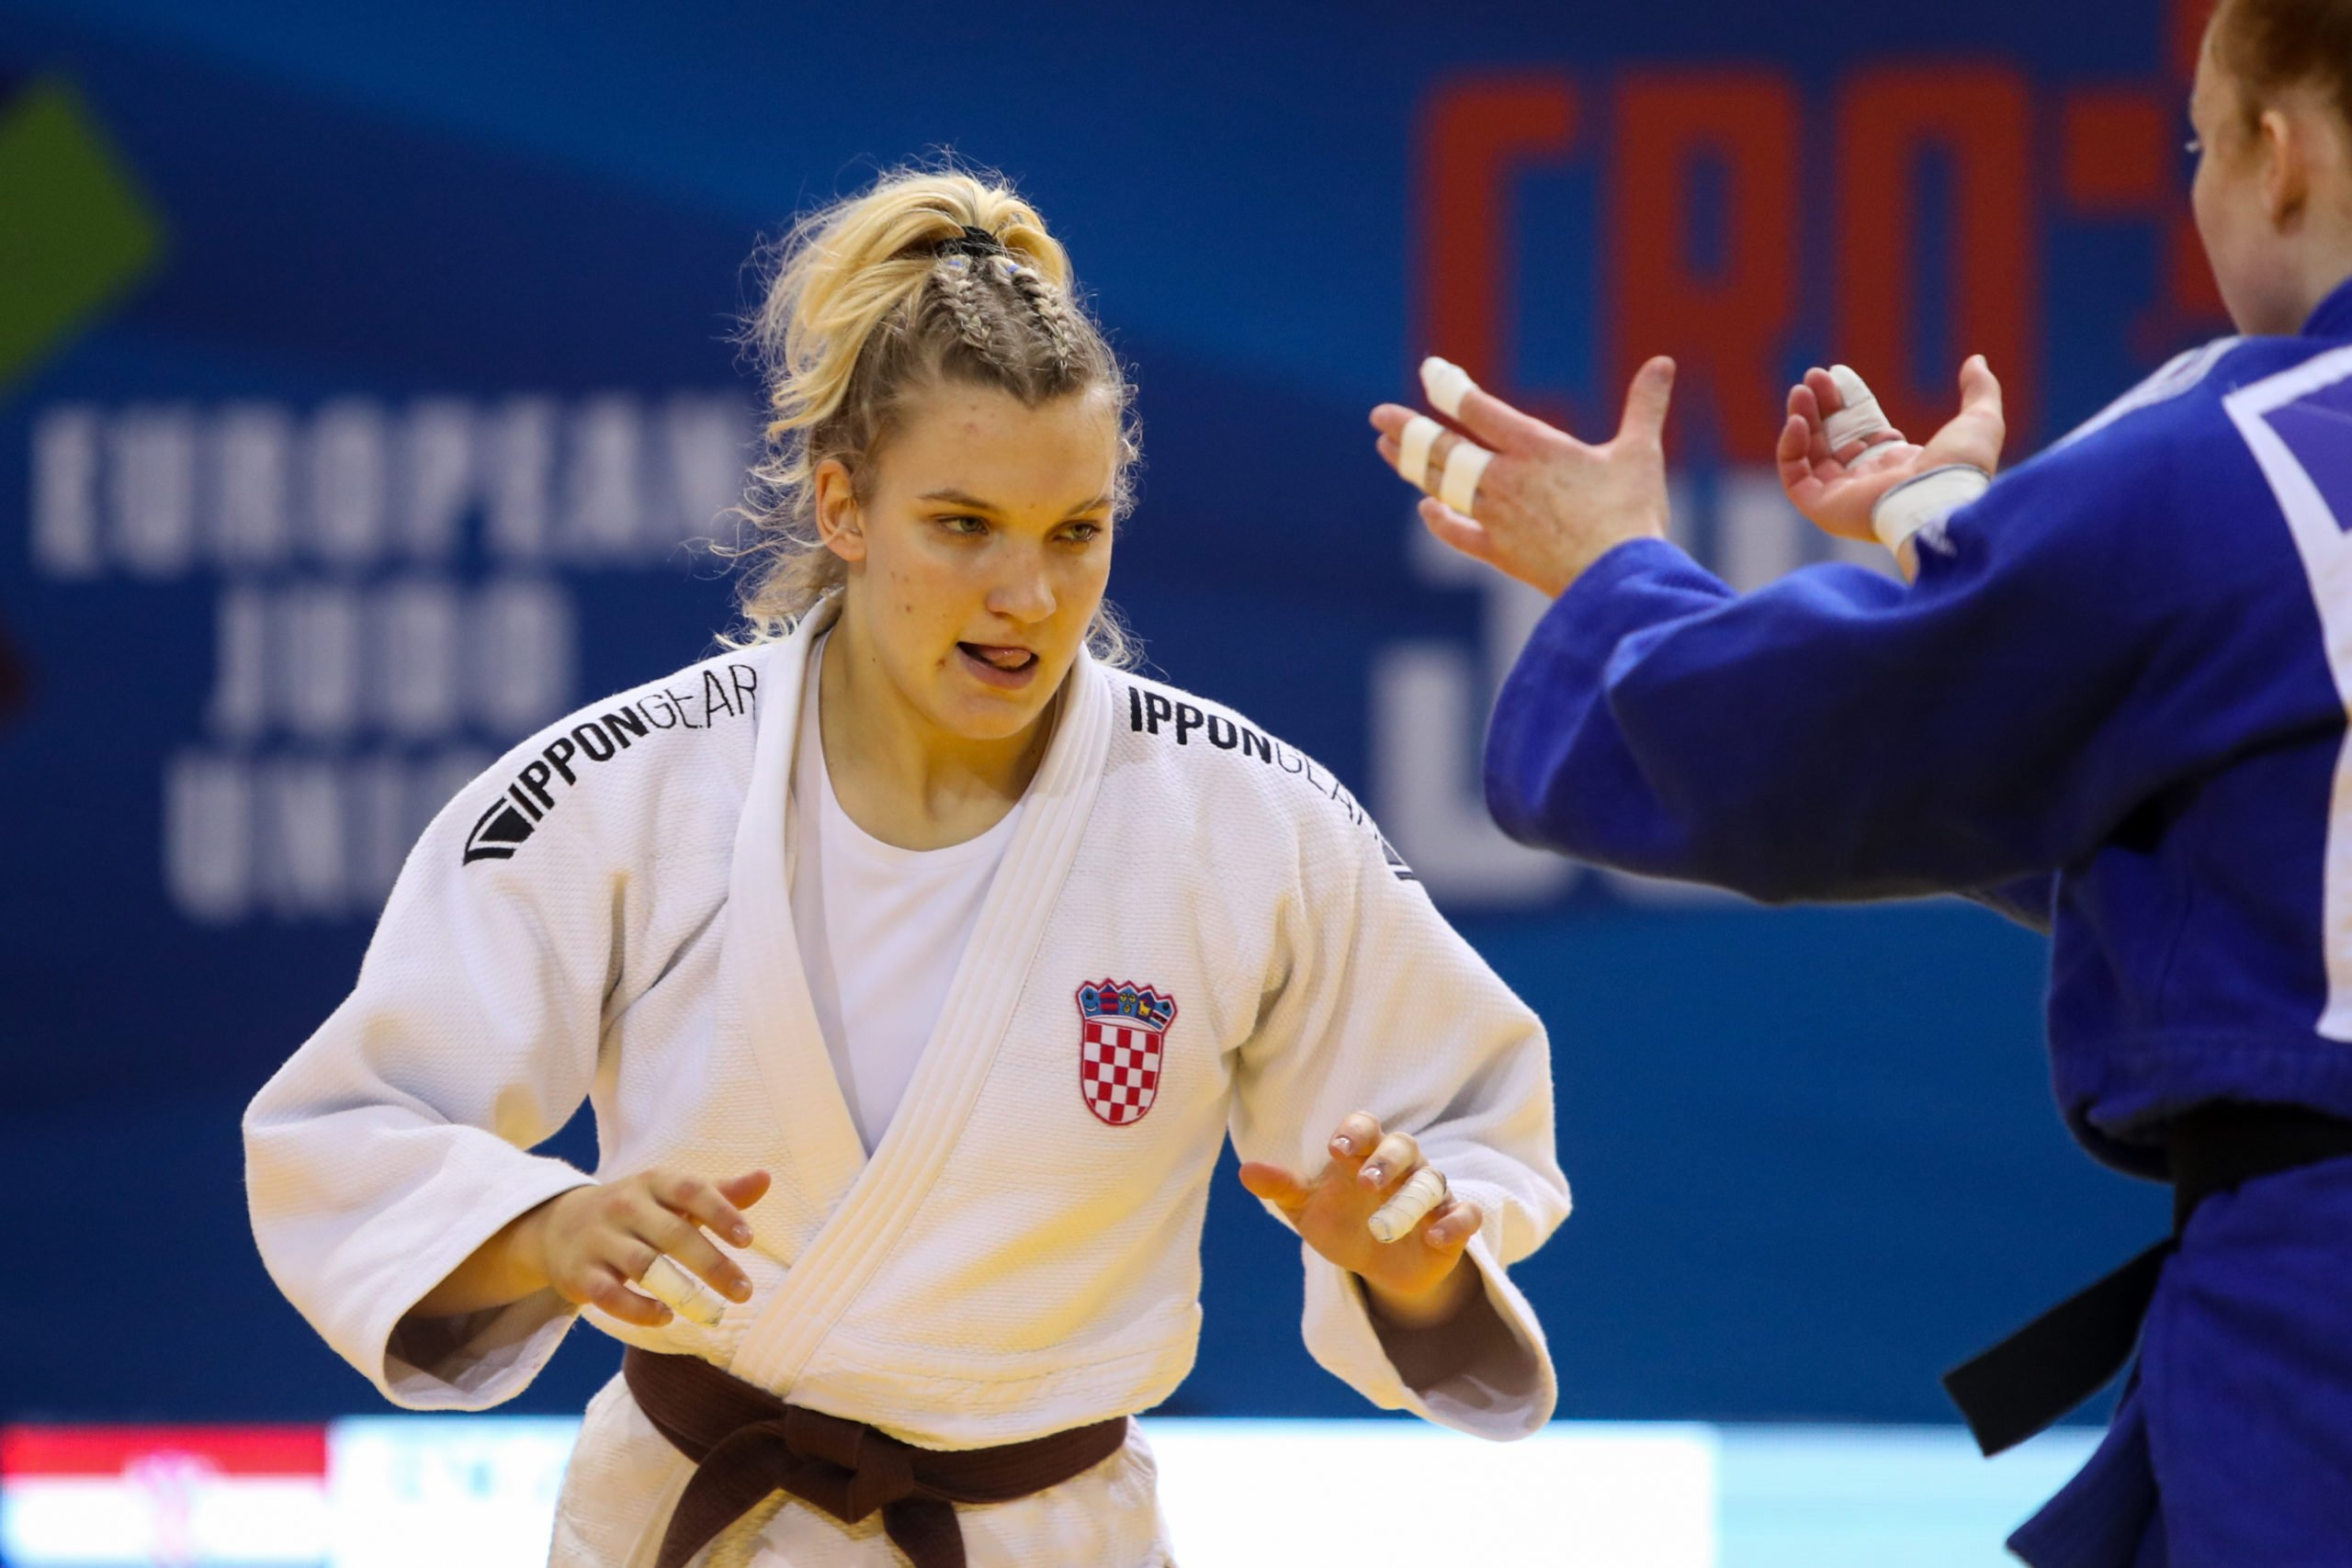 CROATIA DELIGHTED WITH UNEXPECTED GOLD FROM CVJETKO